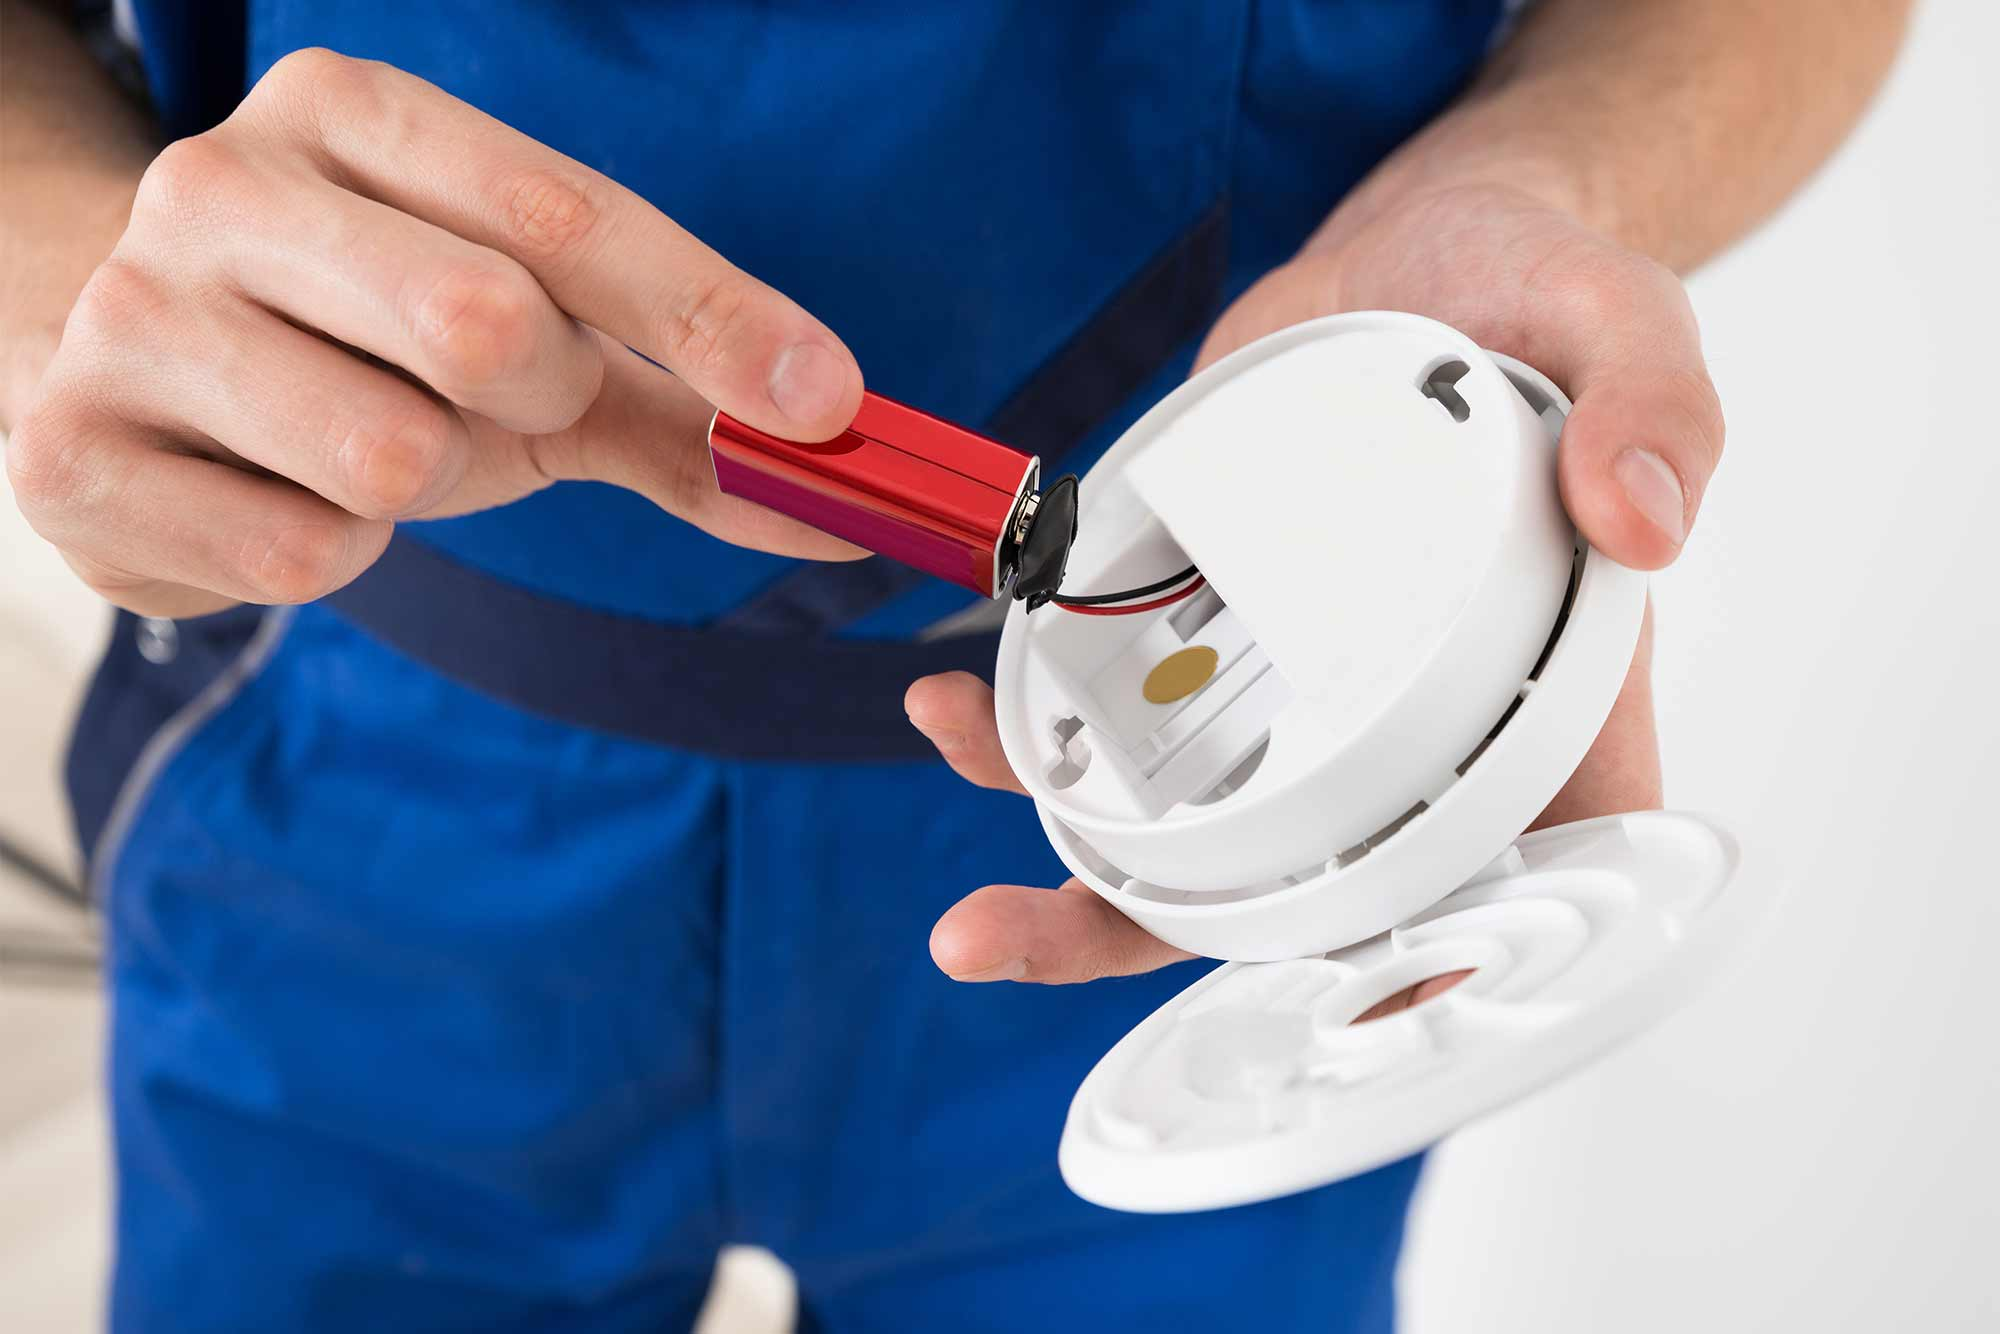 Checkmate Safety Smoke Alarm Testing and Smoke Alarm Servicing System is EASY and EFFECTIVE.